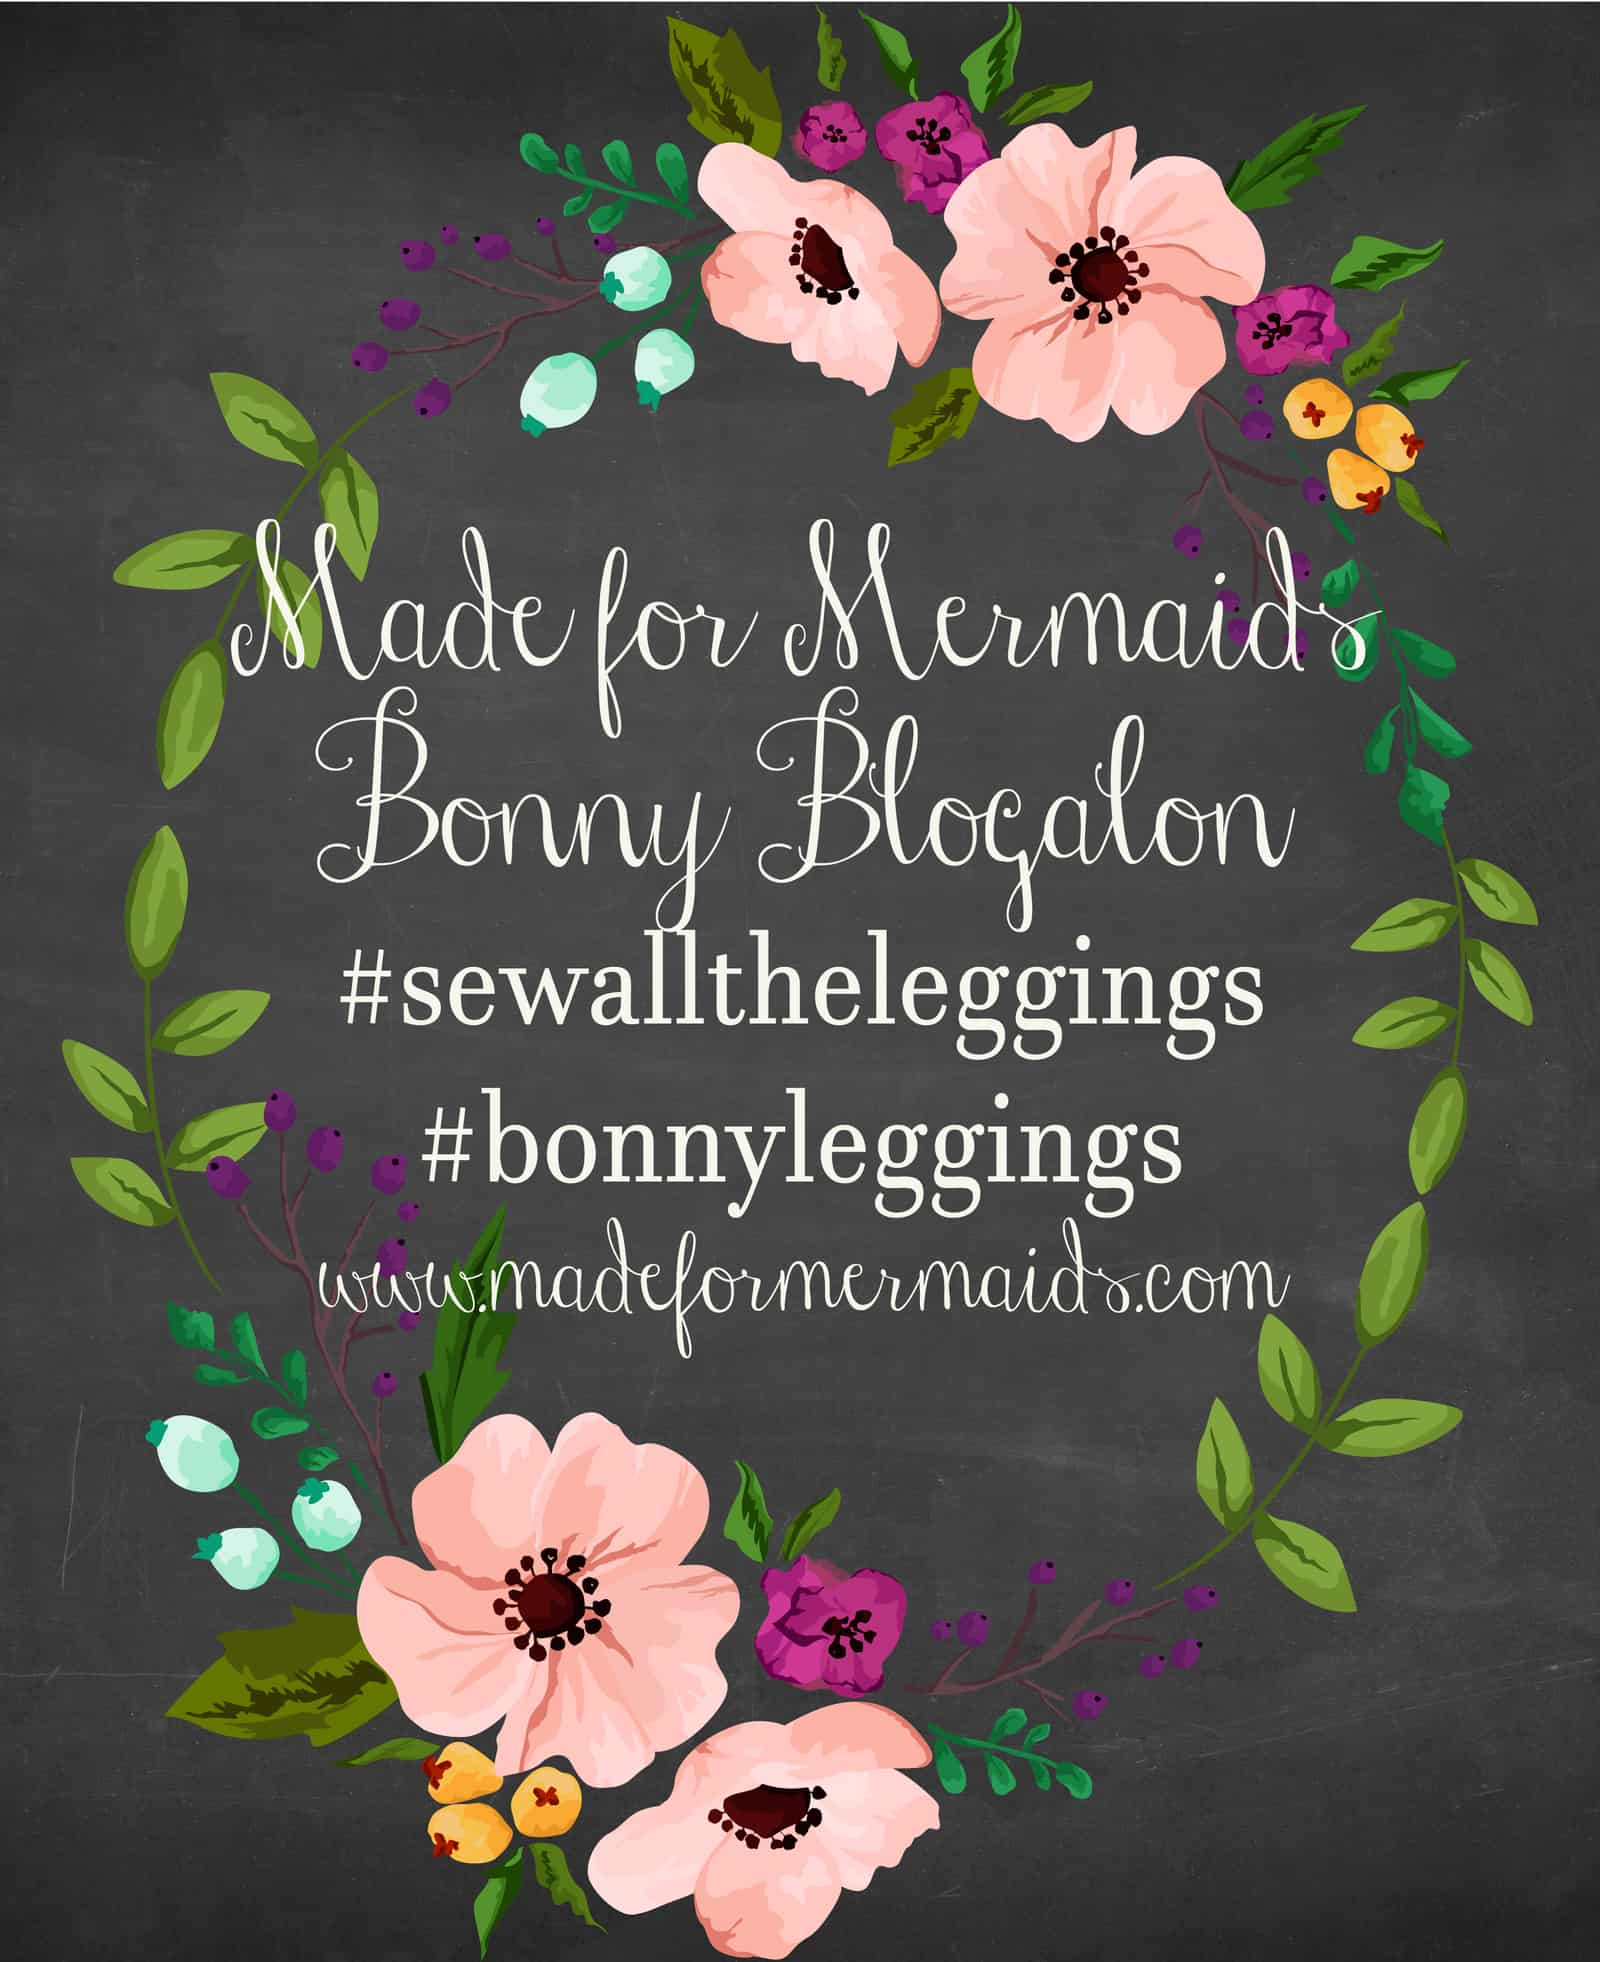 Bonny Blog-a-long: Hem Bands